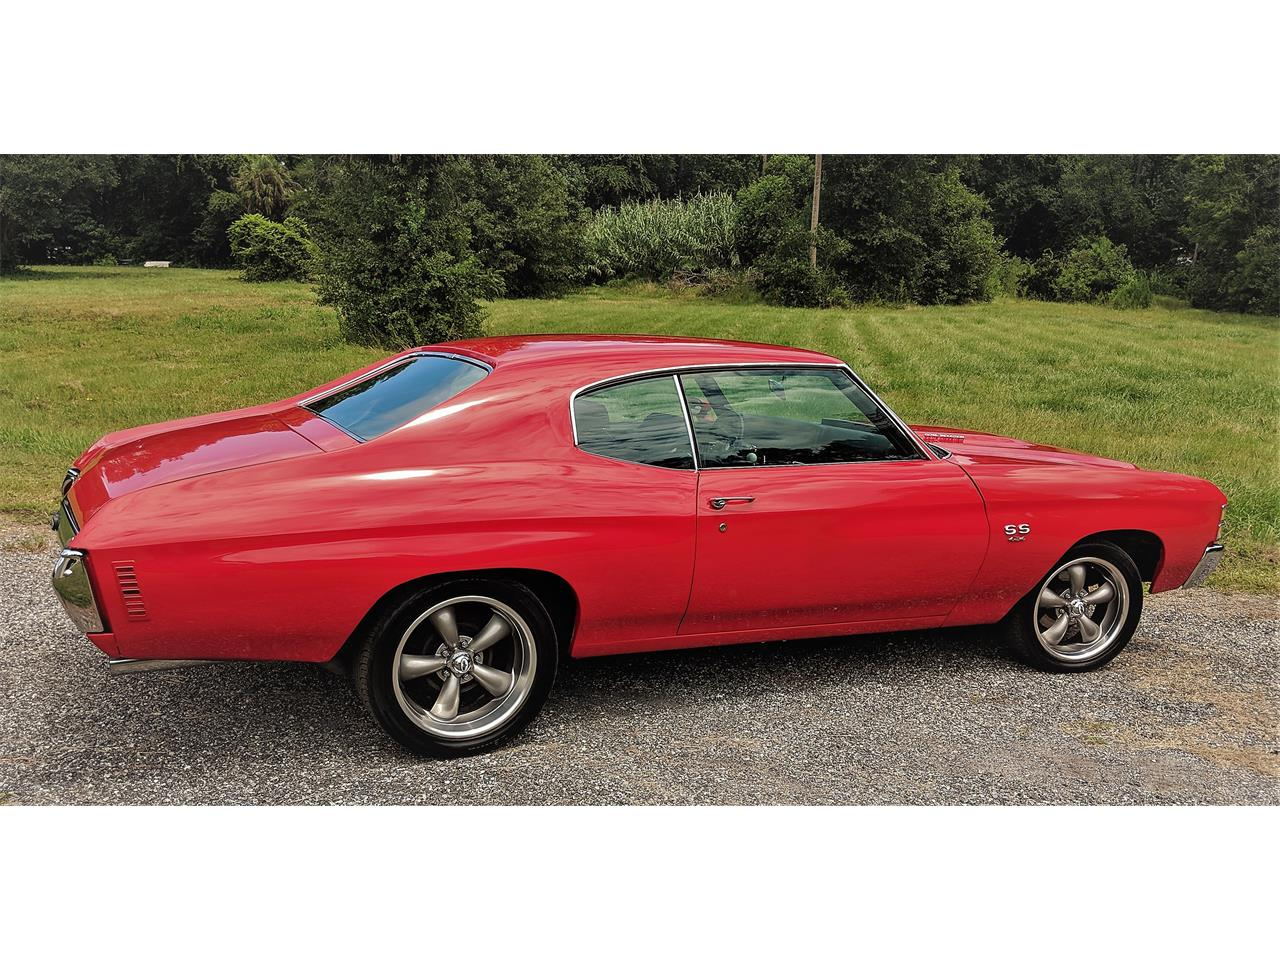 Large Picture of '71 Chevrolet Chevelle SS located in Georgia - $33,000.00 - OH9I